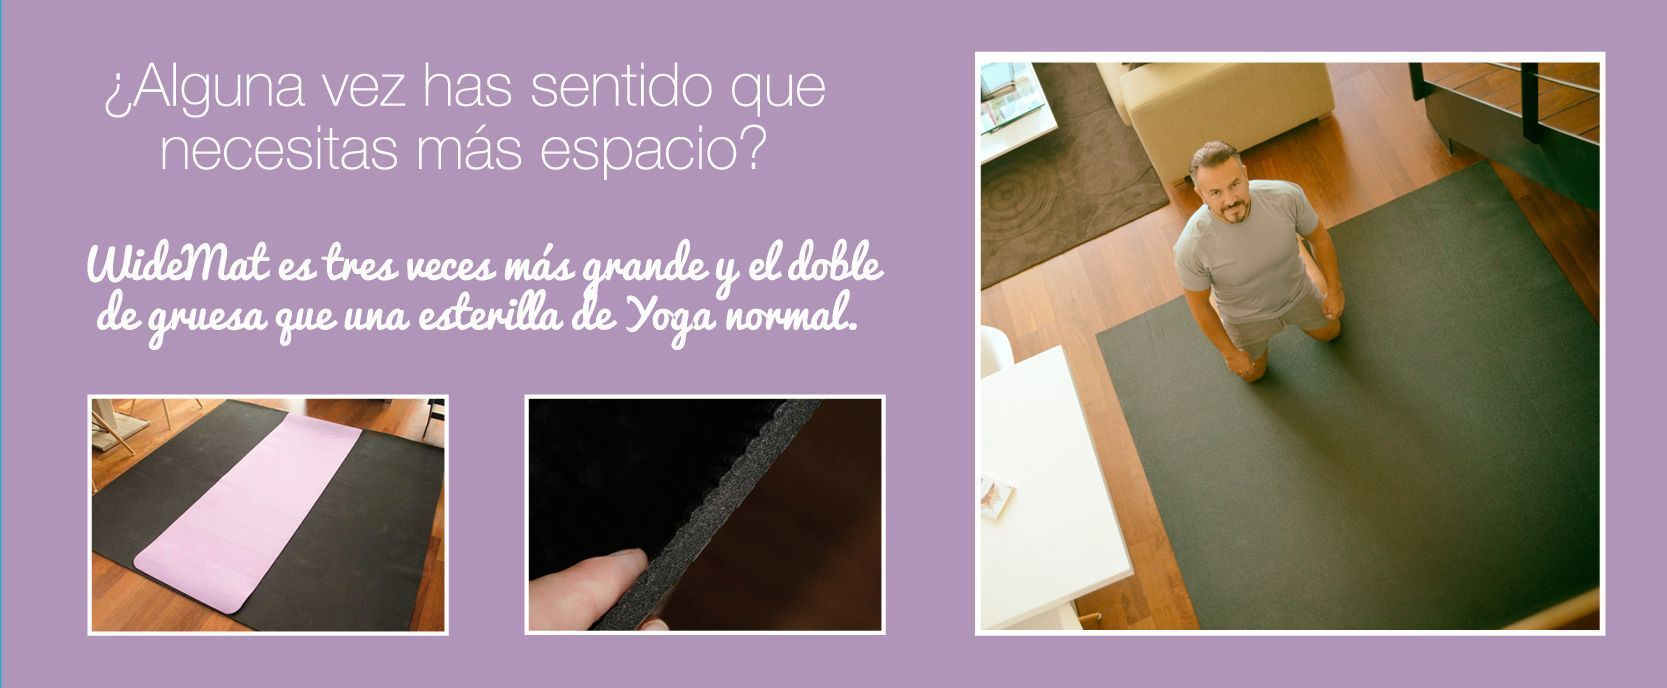 Esterilla de yoga widemat